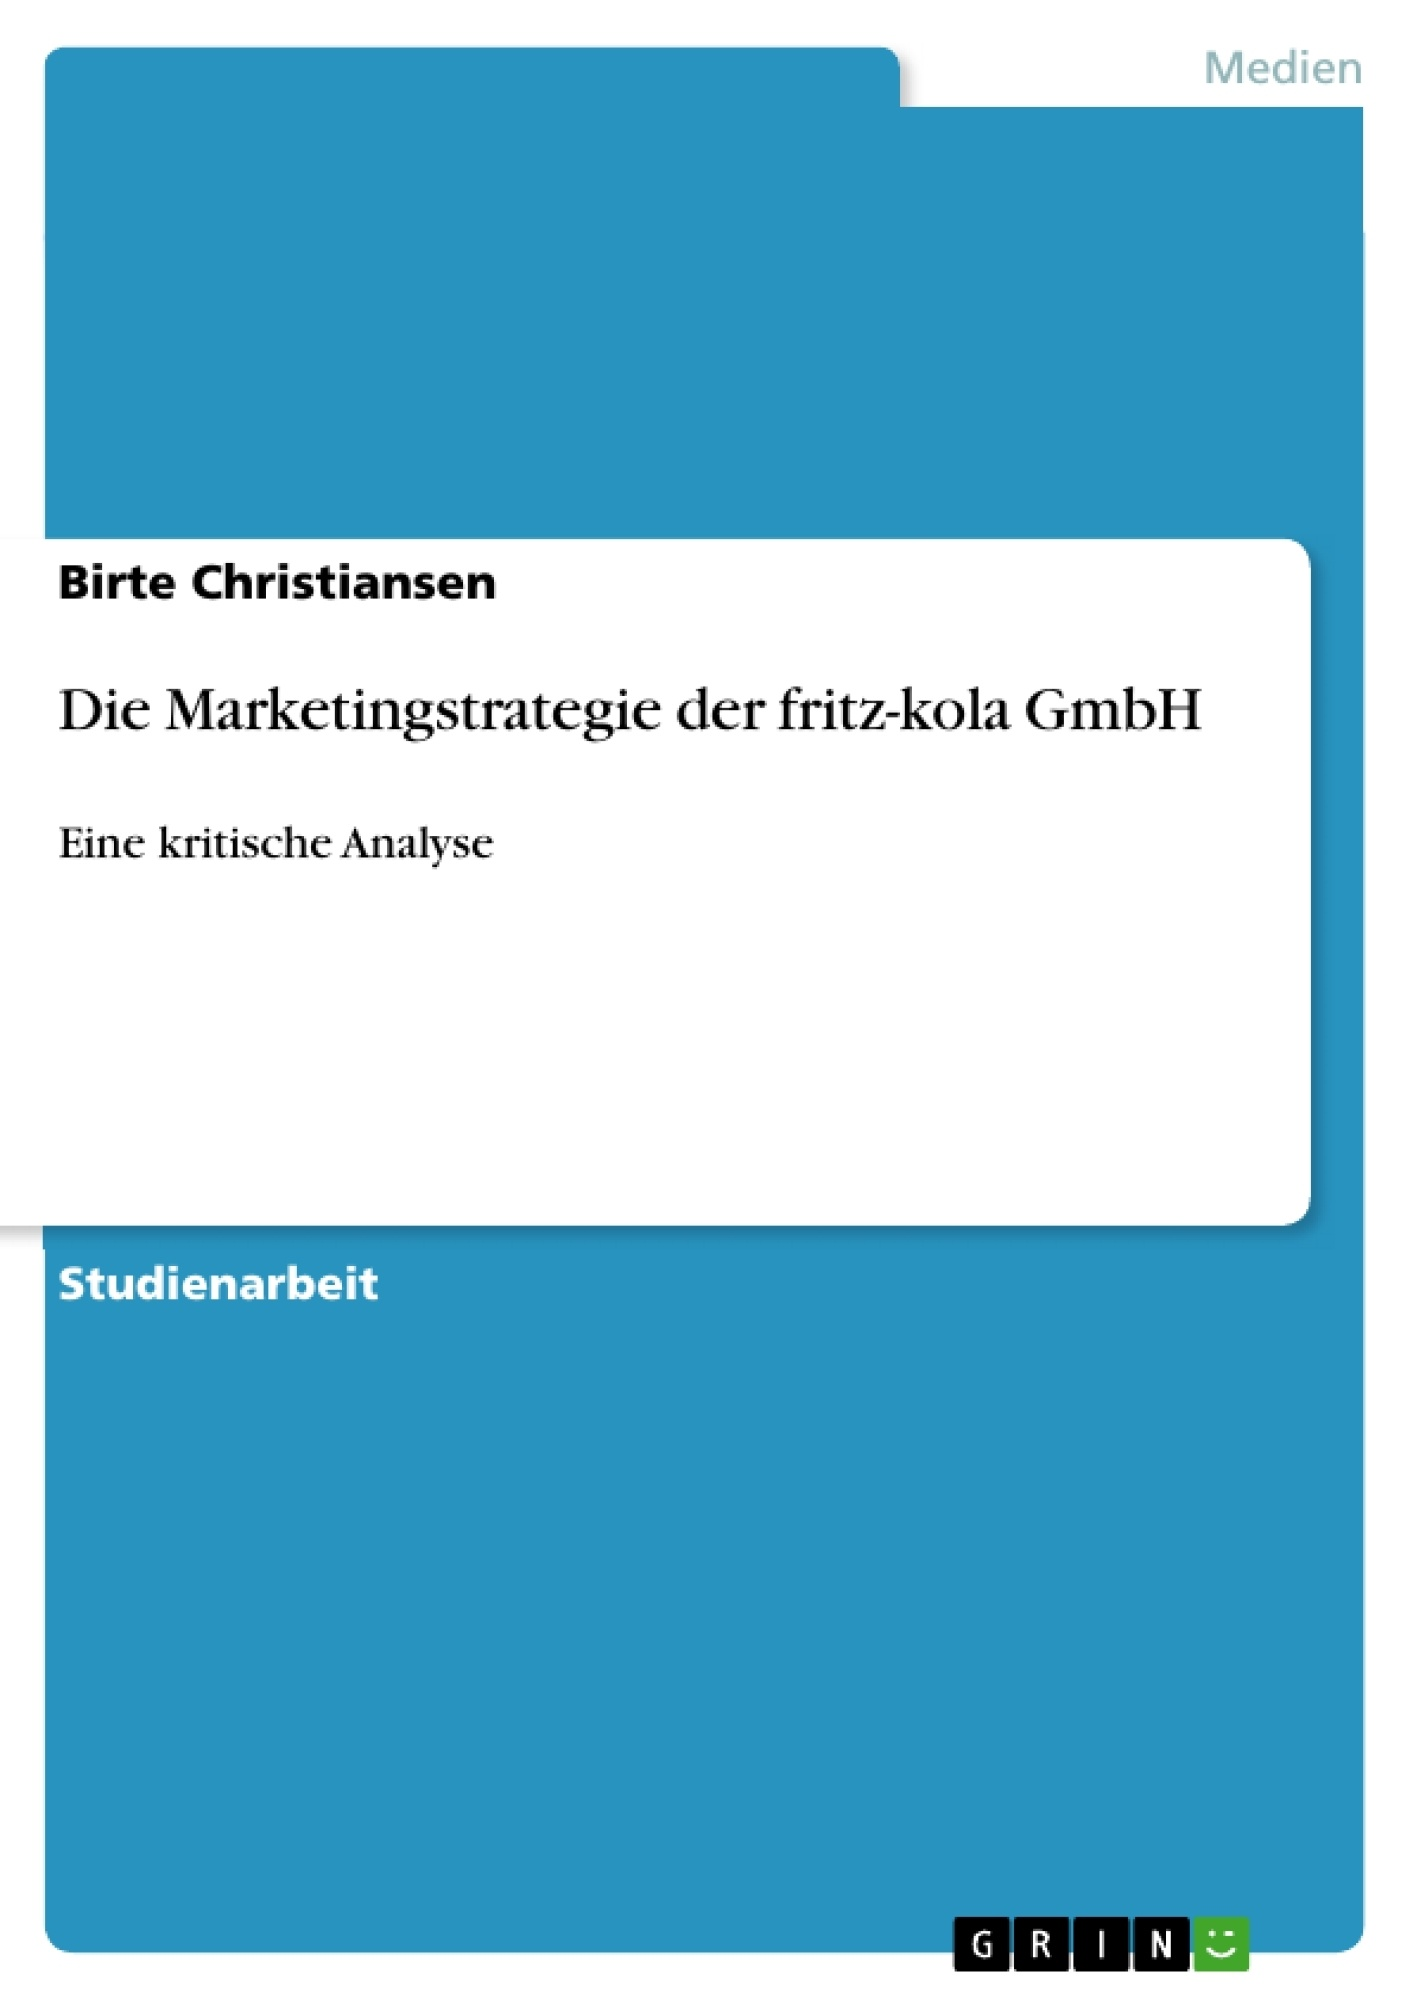 Titel: Die Marketingstrategie der fritz-kola GmbH